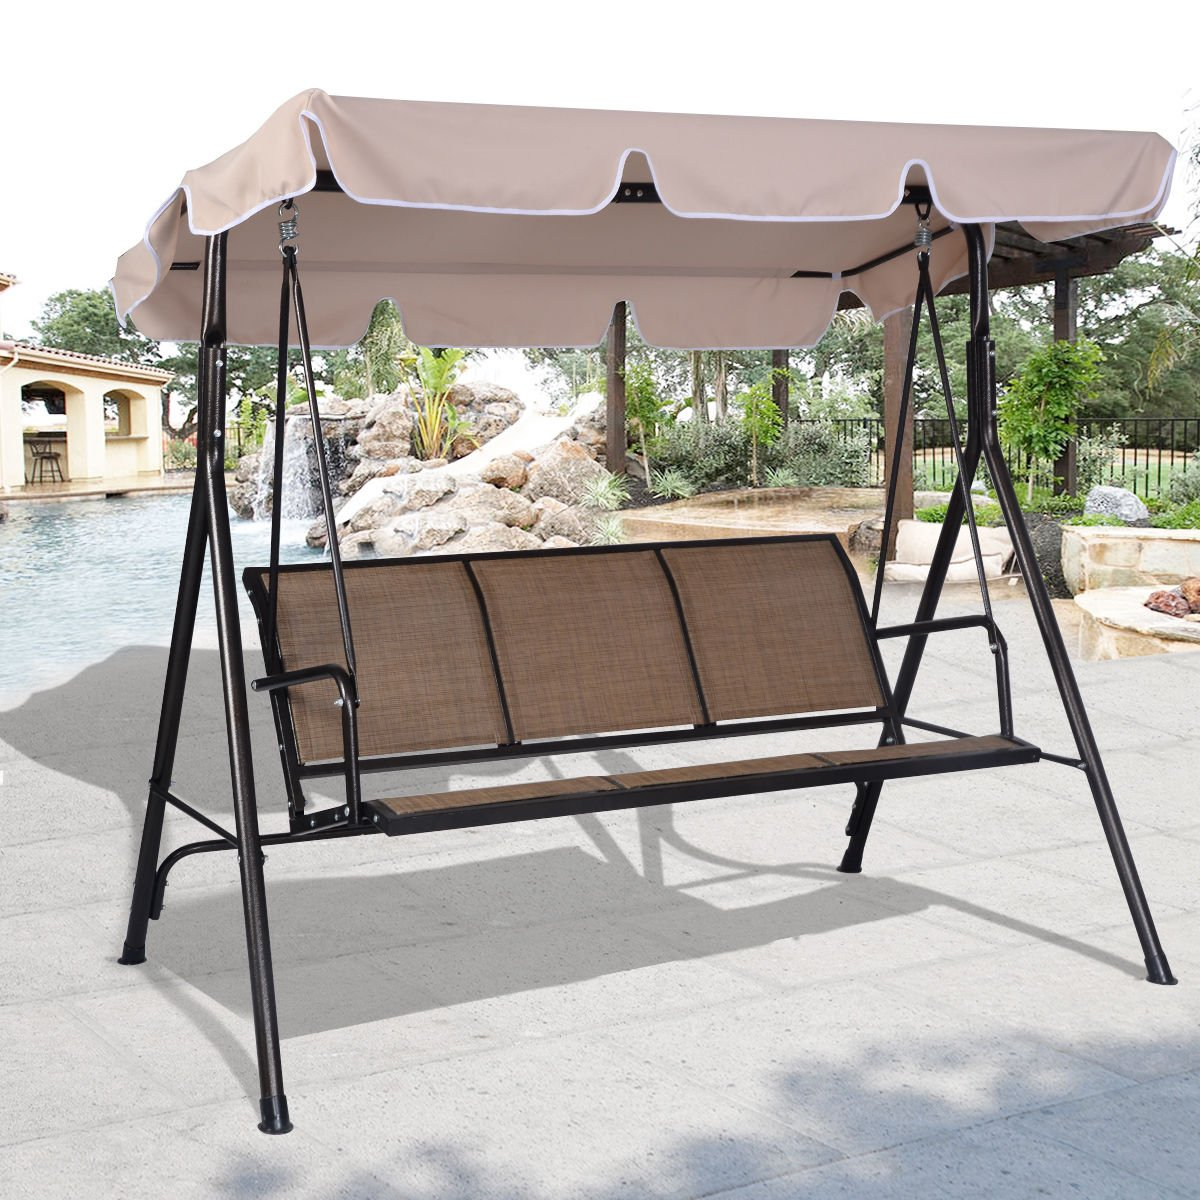 COSTWAY 3 Person Patio Swing Outdoor Canopy Awning Yard Furniture Hammock Steel .#GH45843 3468-T34562FD483923